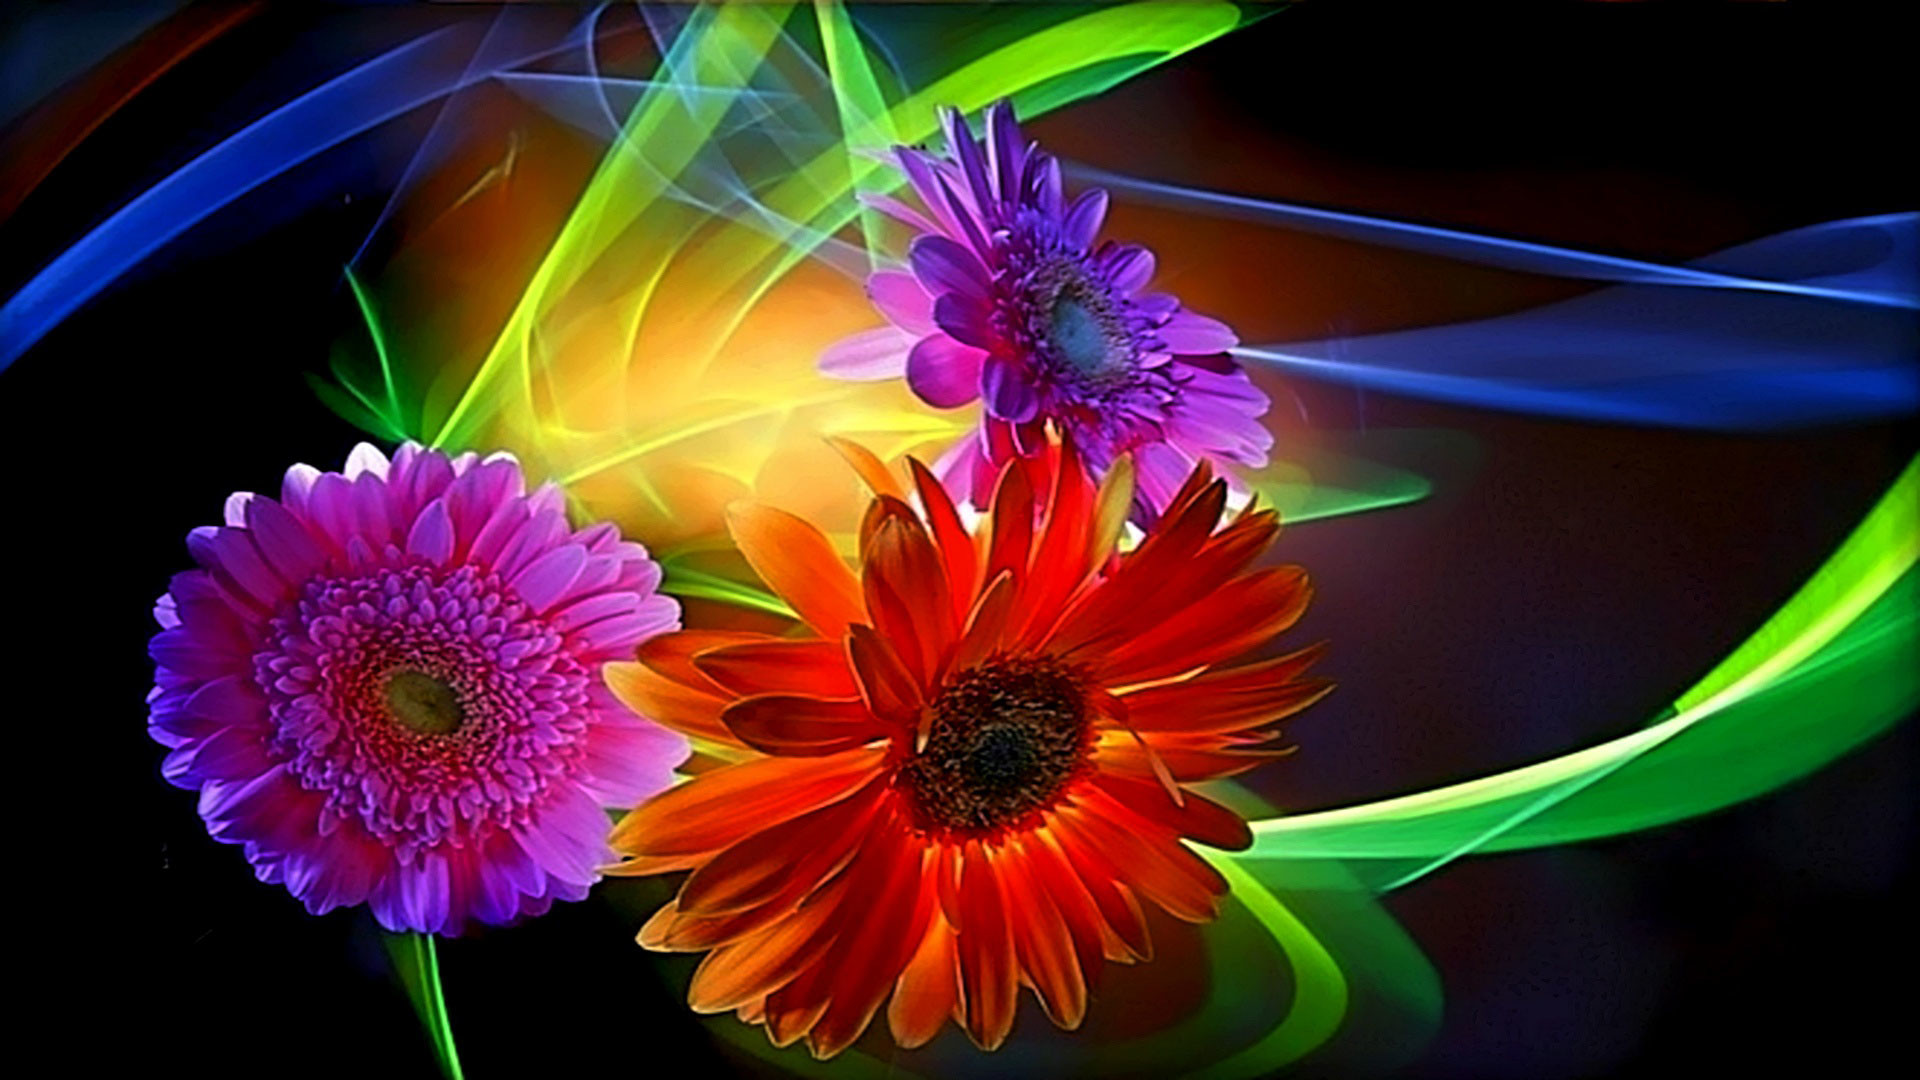 Flowers Live Wallpaper – Android Apps on Google Play